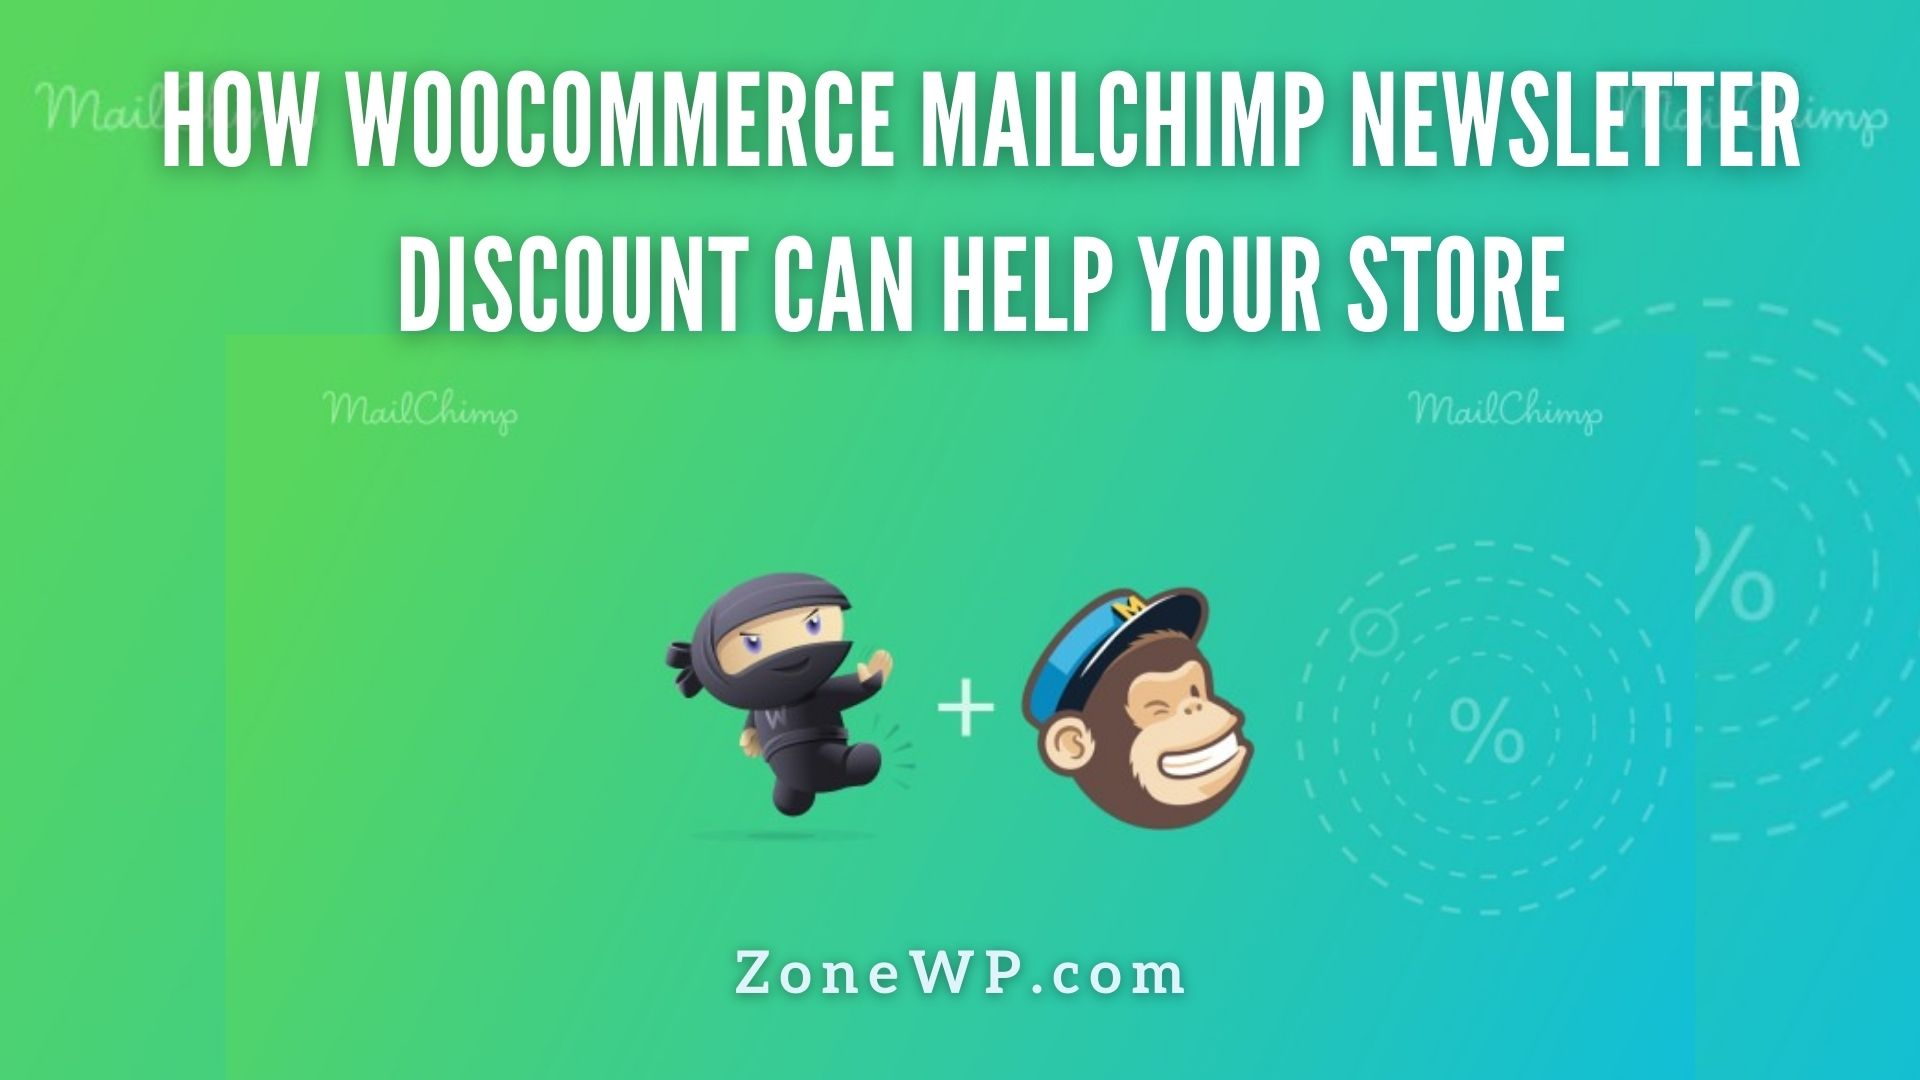 WooCommerce MailChimp Newsletter Discount